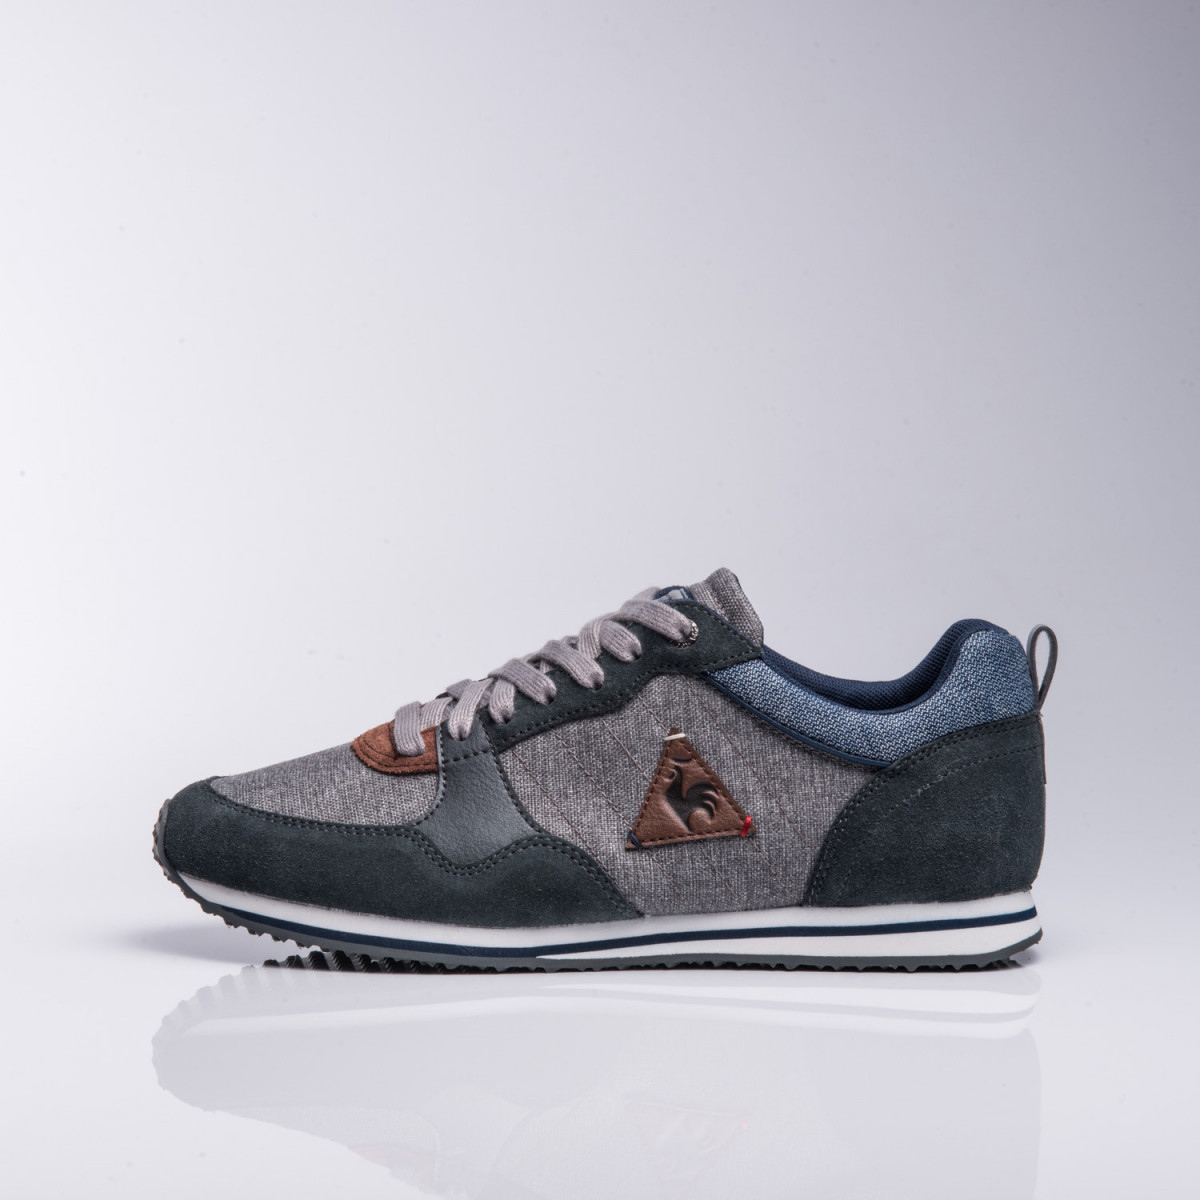 Zapatillas Le Coq Sportif Bolivar Craft 2